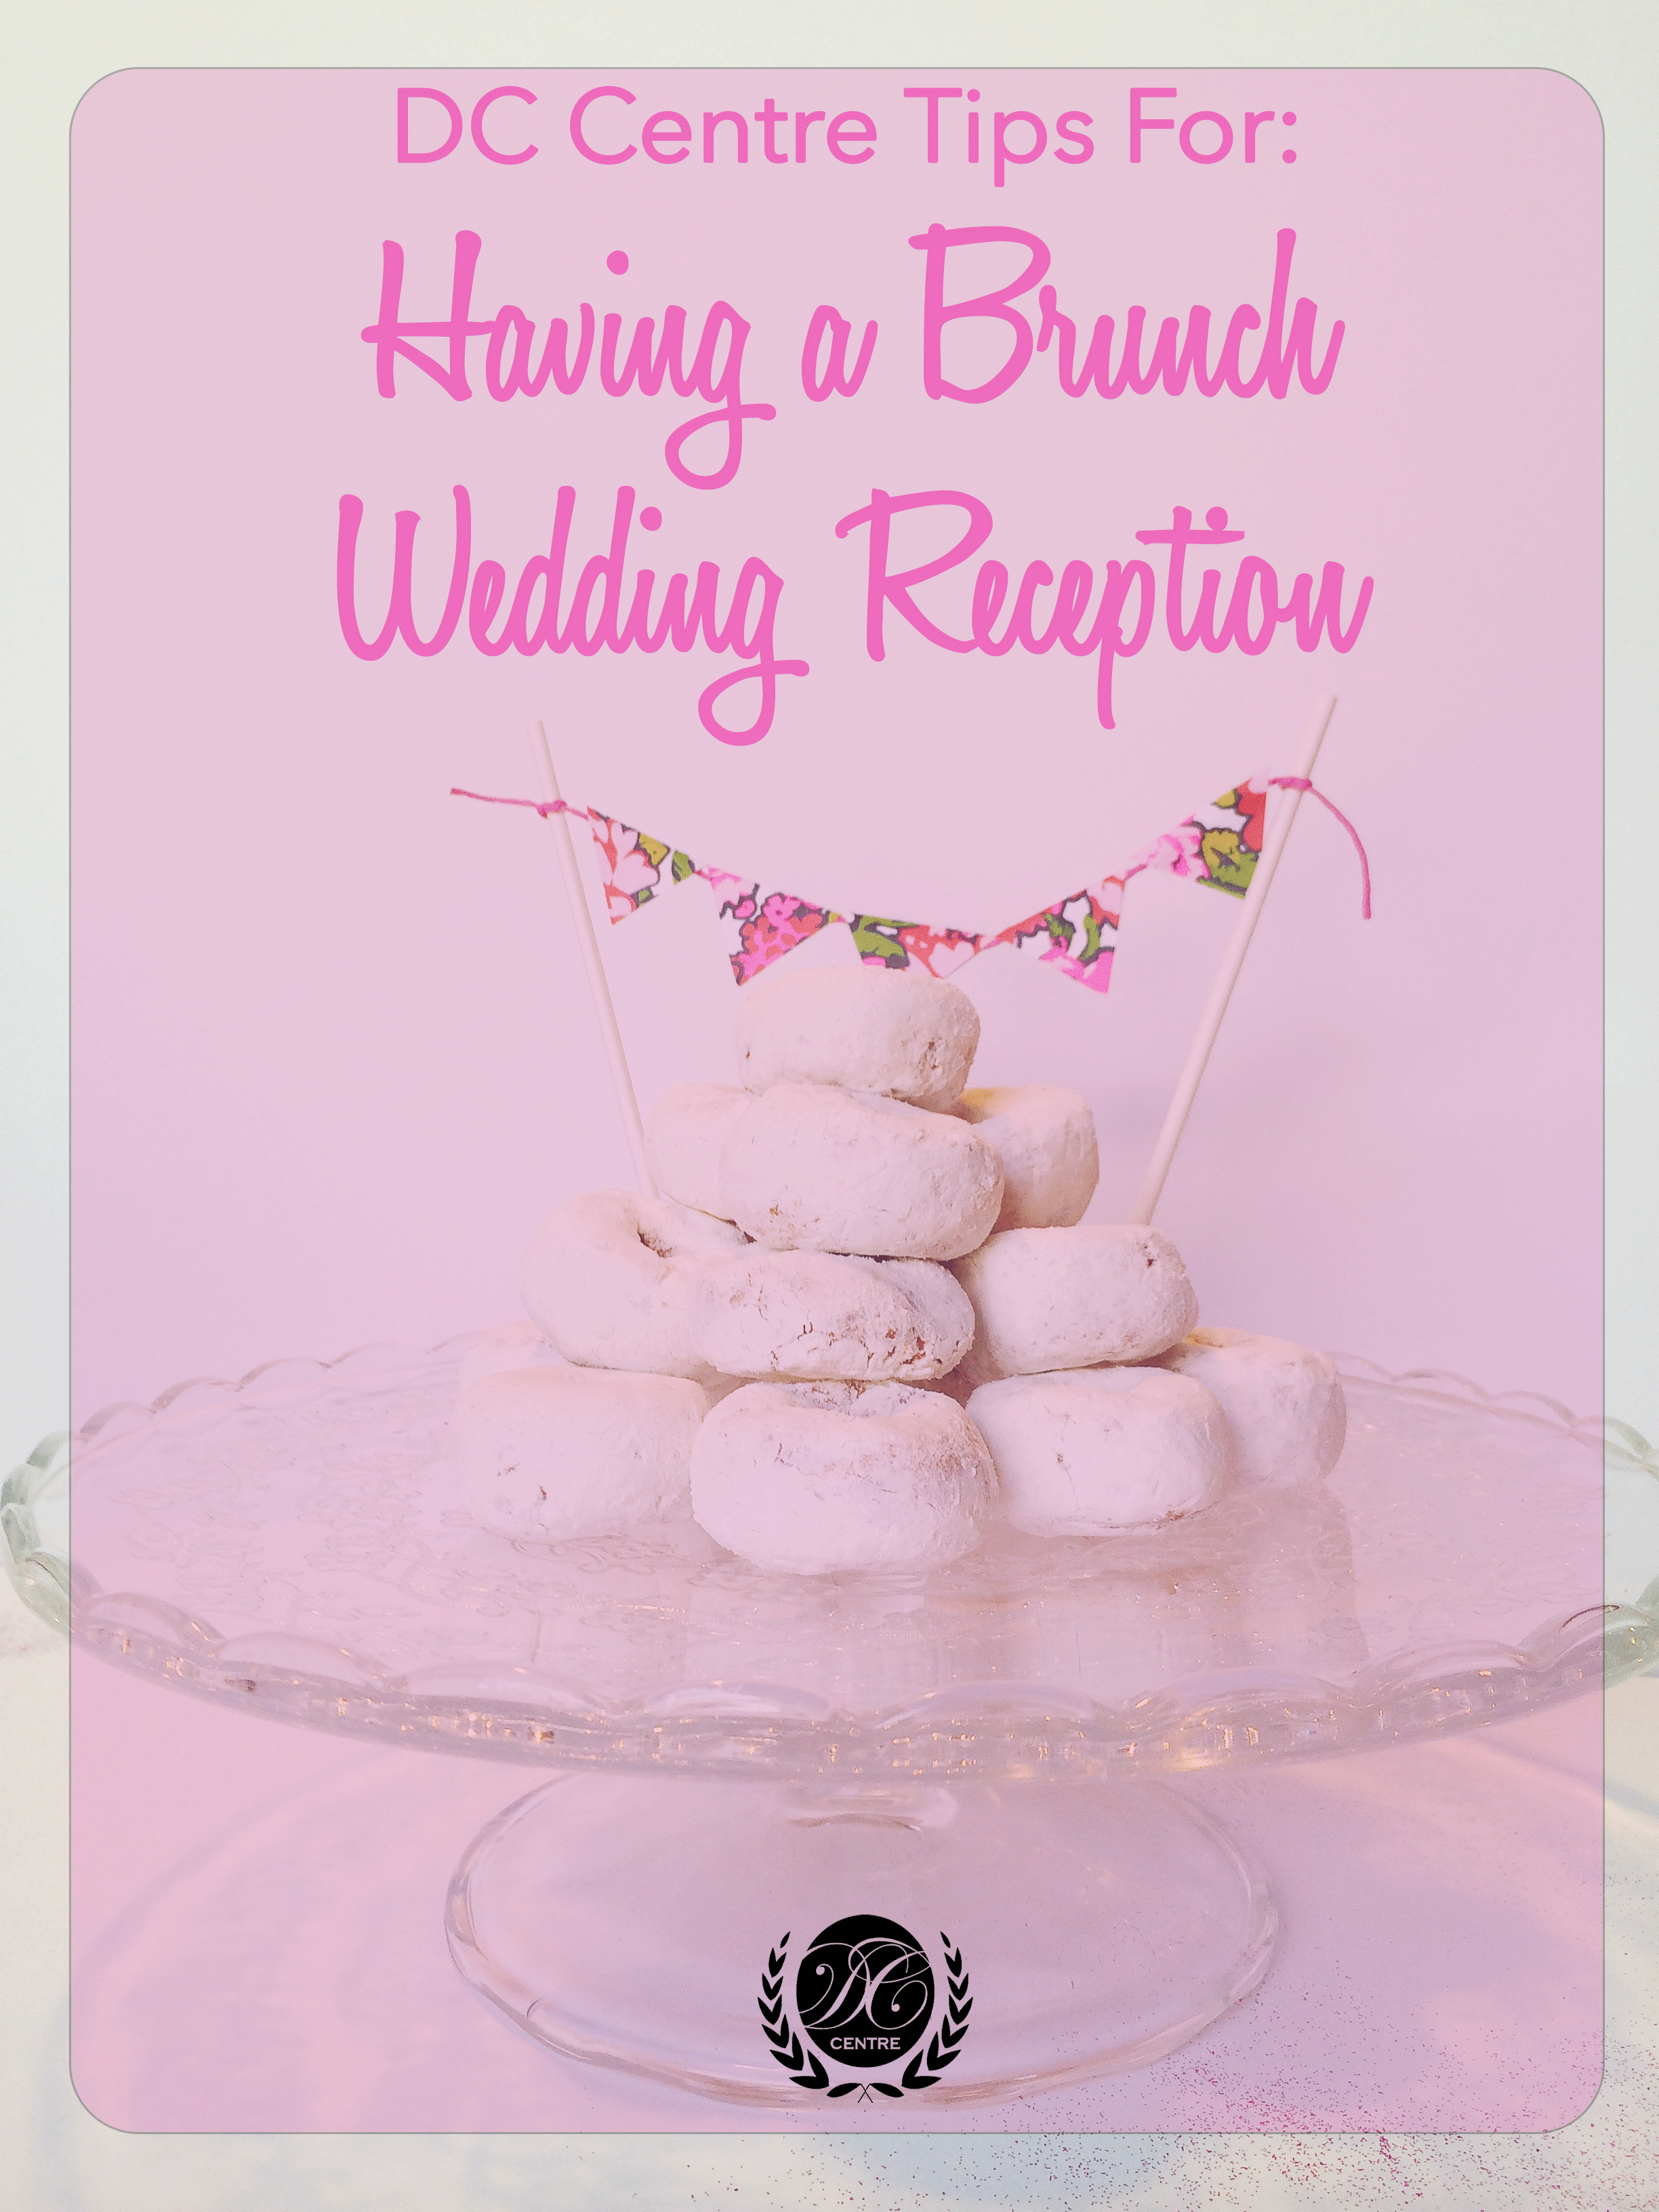 Tips for Having a Brunch Wedding - DC Centre